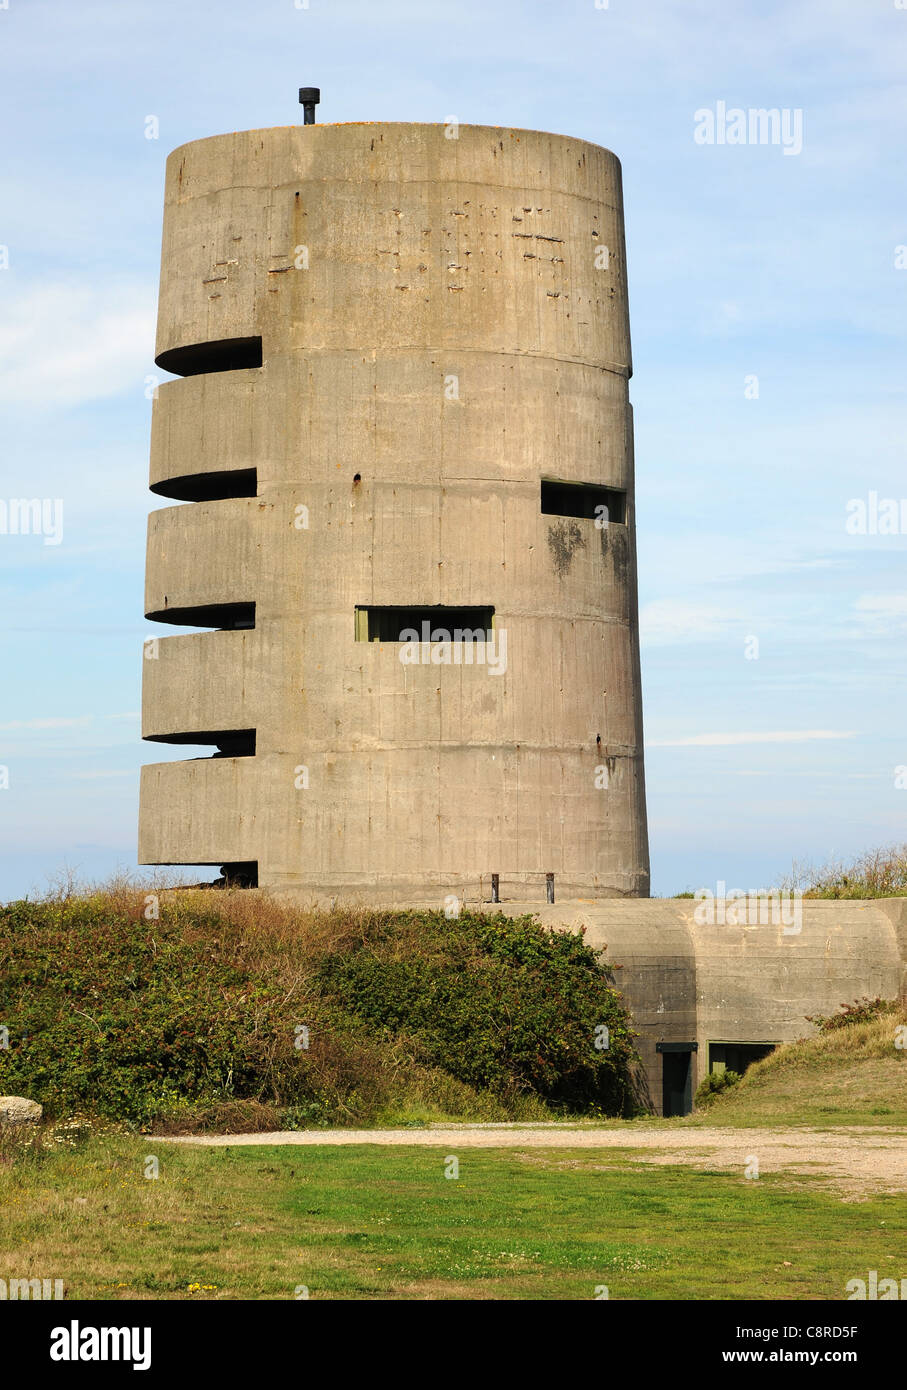 German artillery observation bunker. A part of the Atlantic Wall fortifications of the island of Guernsey, Channel - Stock Image